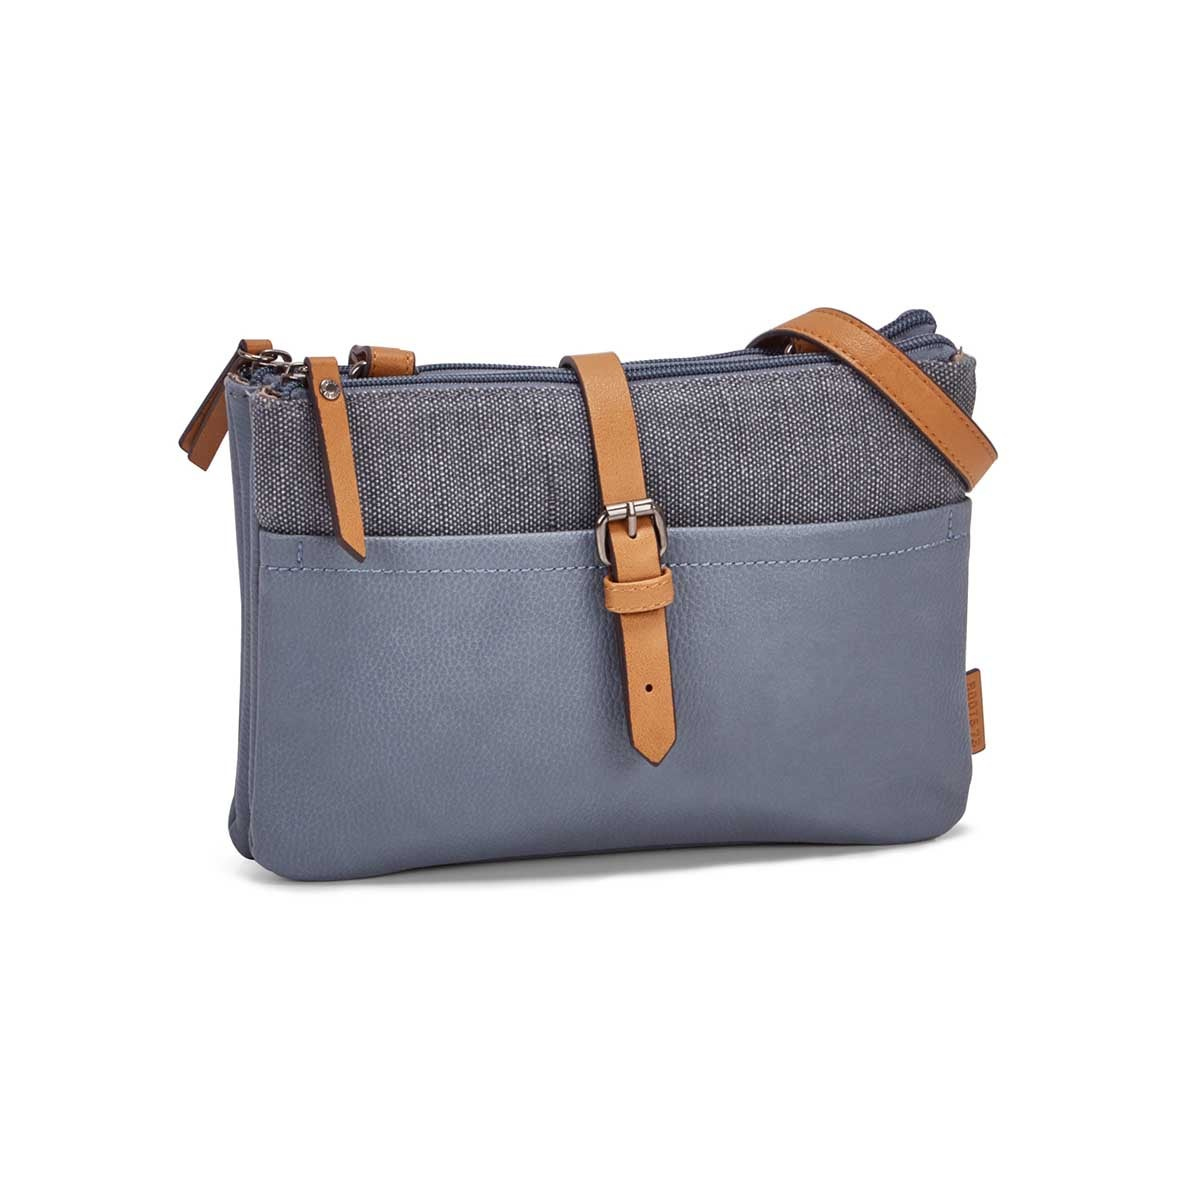 Women's R5529 light blue EAST/WEST crossbody bag